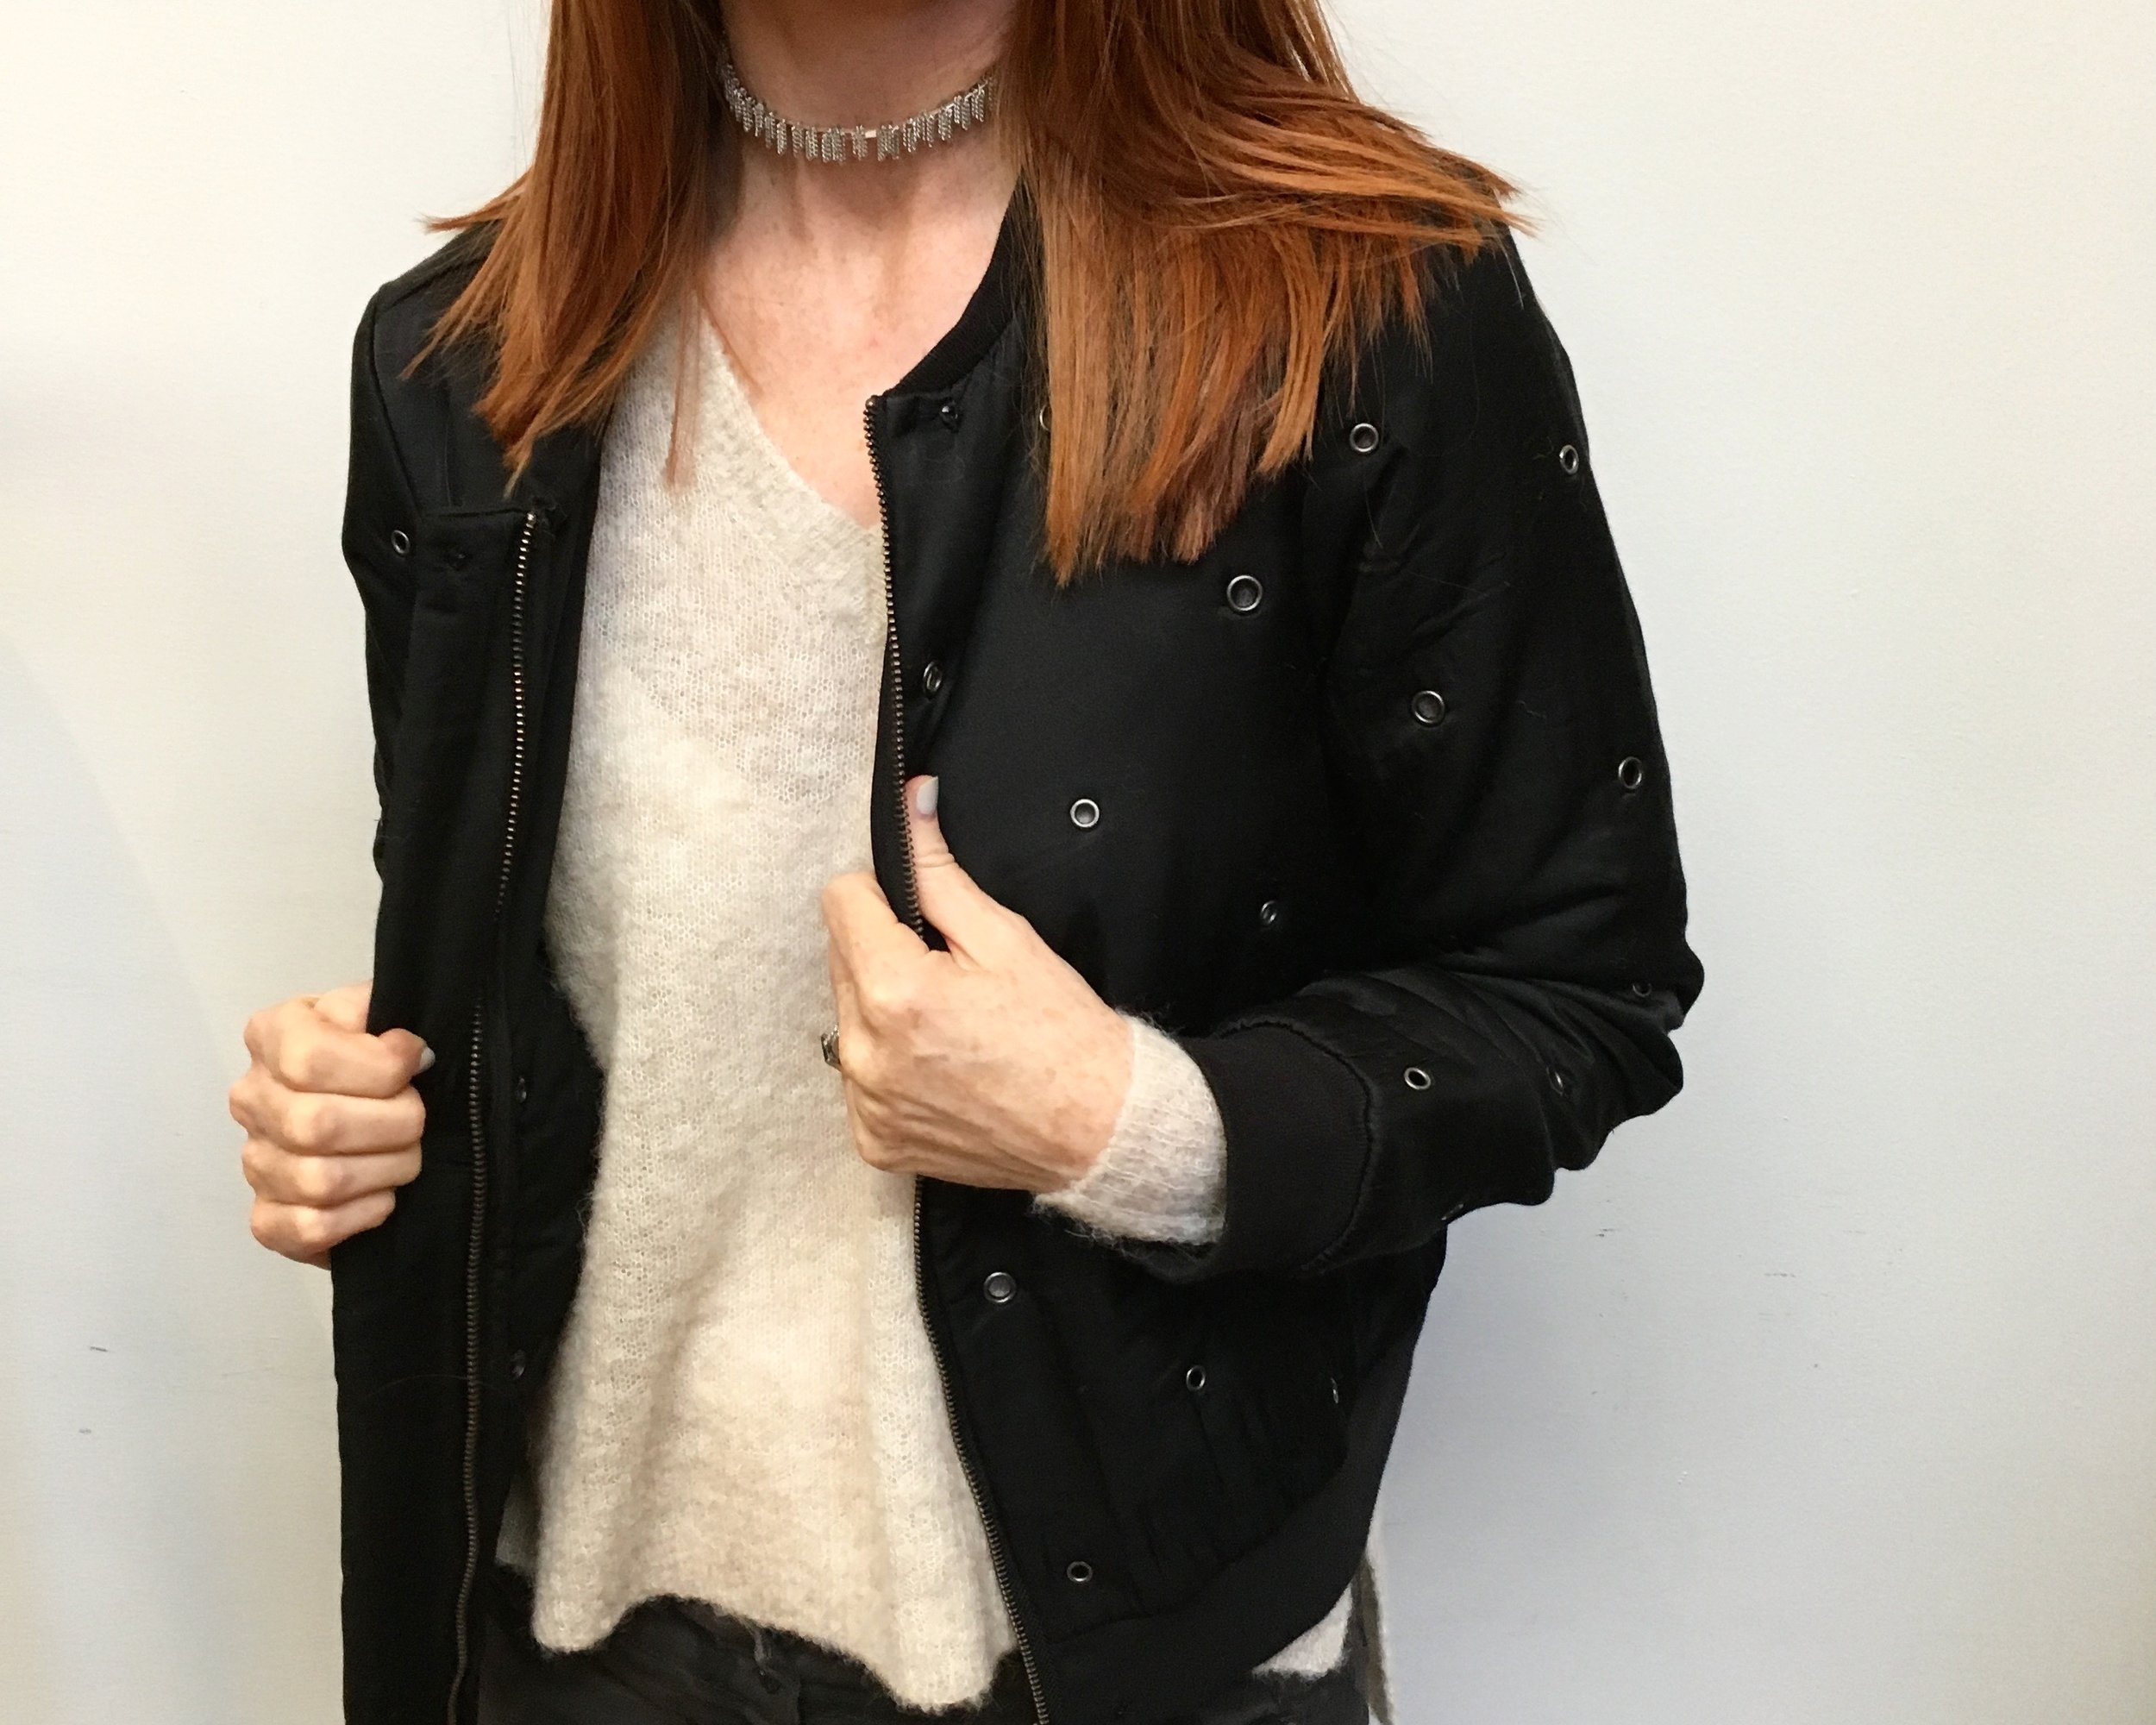 Velvet Bomber WAS $360  NOW  $252 LINE Cashmere Sweater WAS $299 NOW $209